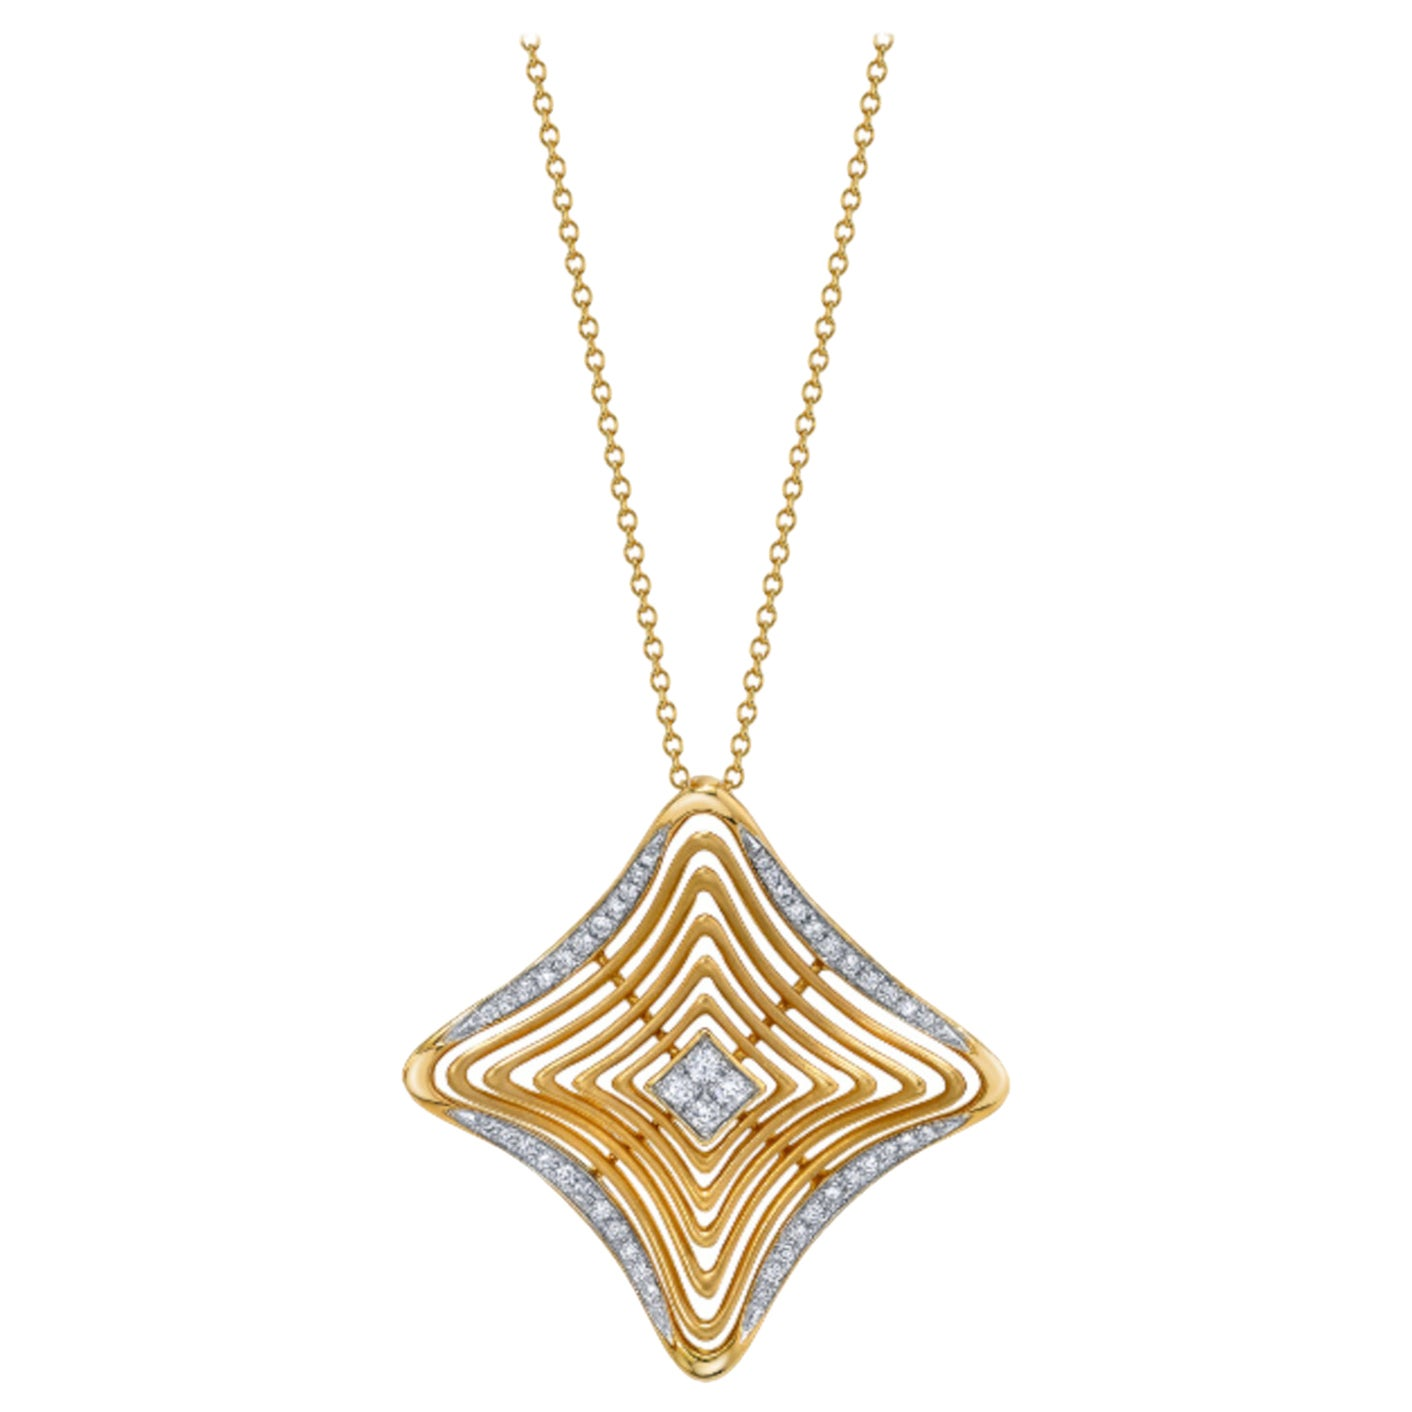 .37 ct. t.w. Diamond & 18k Yellow Gold Dreamcatcher Pendant Necklace with Chain